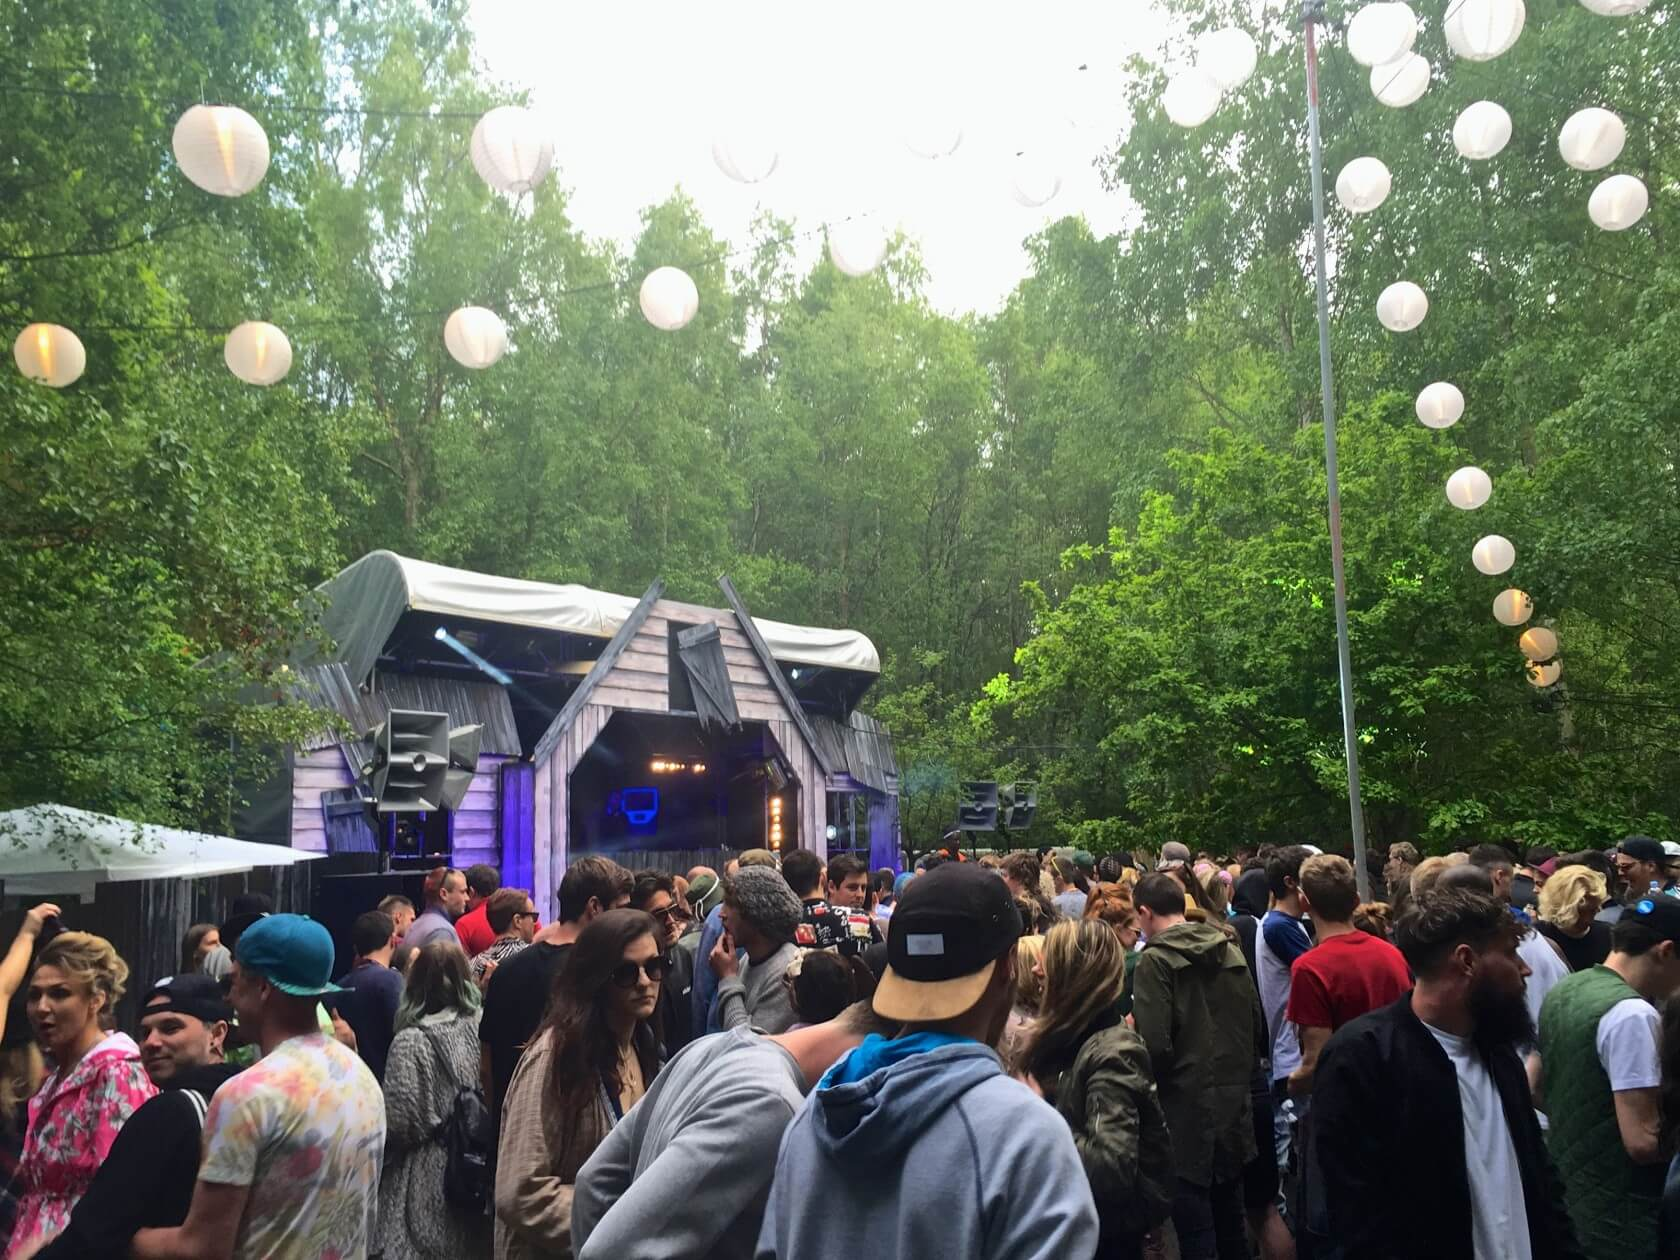 lost village festival review + guide uk